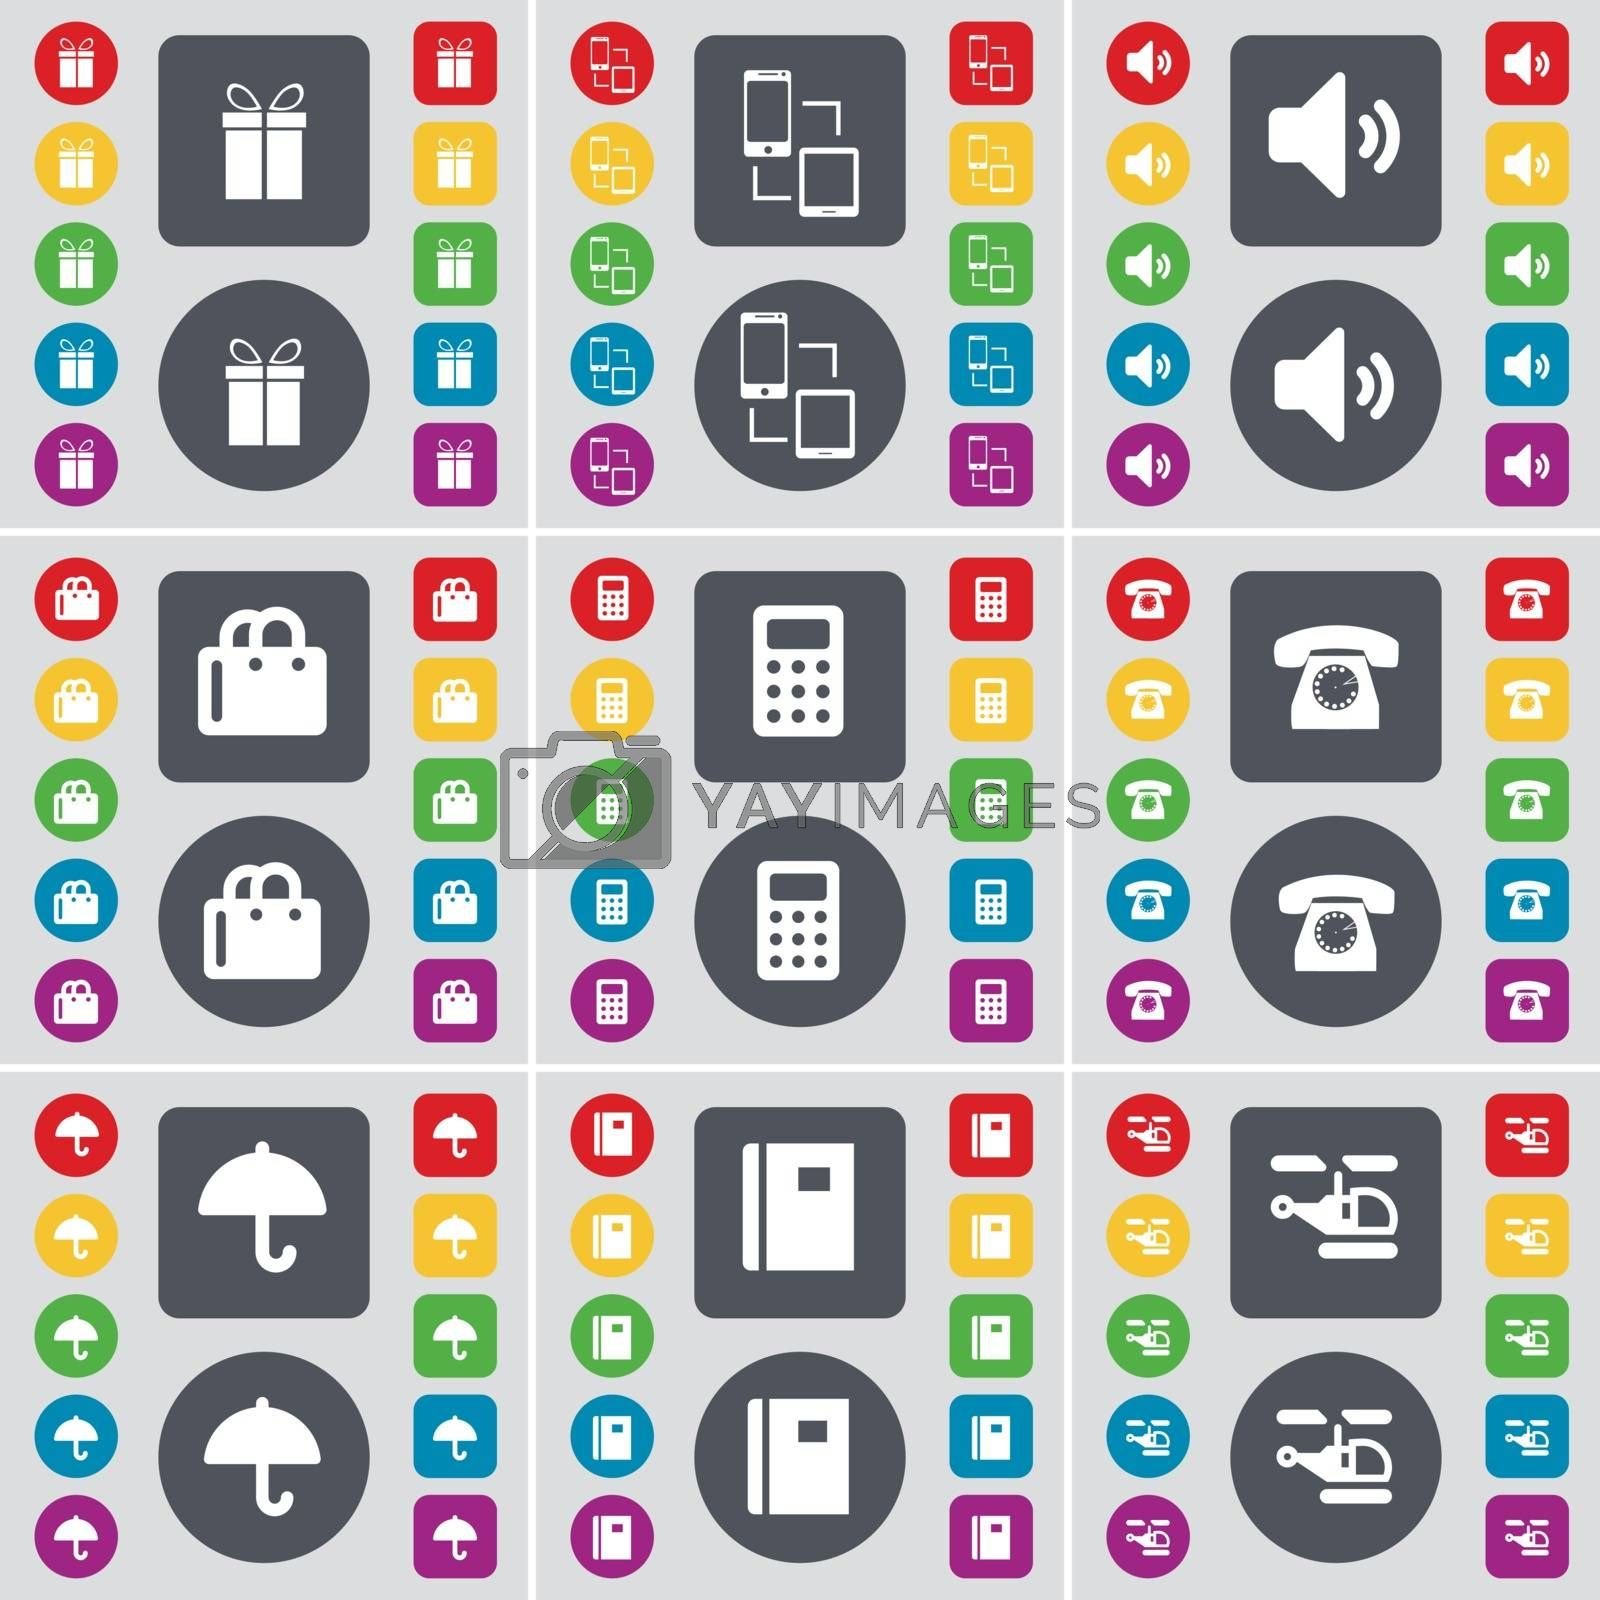 Royalty free image of Gear, Information exchange, Sound, Shopping bag, Calculator, Retro phone, Umbrella, Notebook, Helicopter icon symbol. A large set of flat, colored buttons for your design. Vector by serhii_lohvyniuk